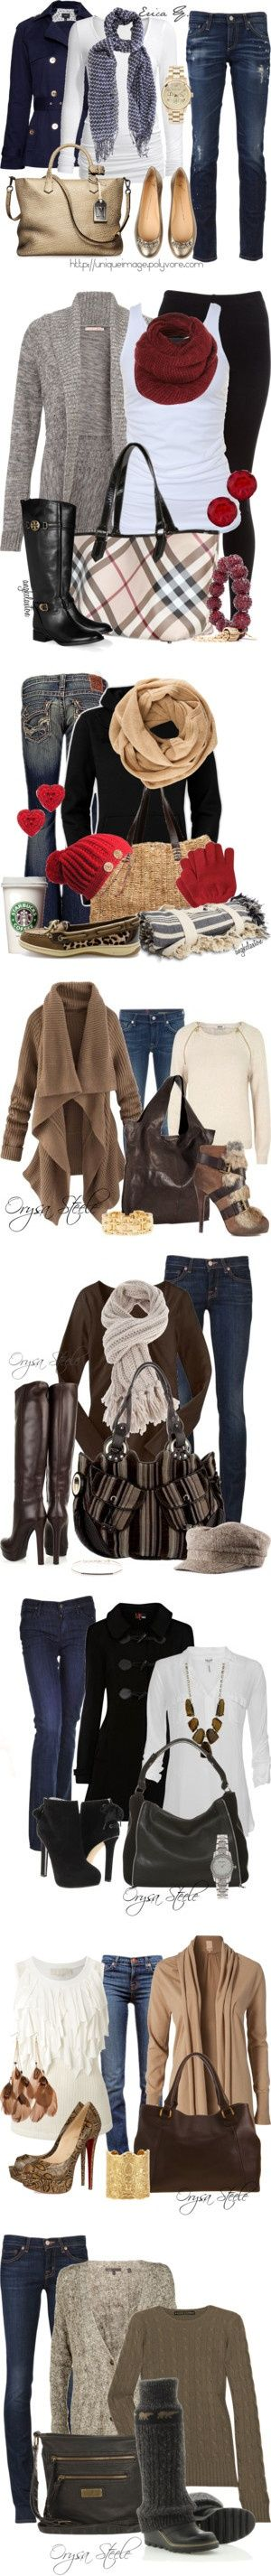 Winter styles which are great